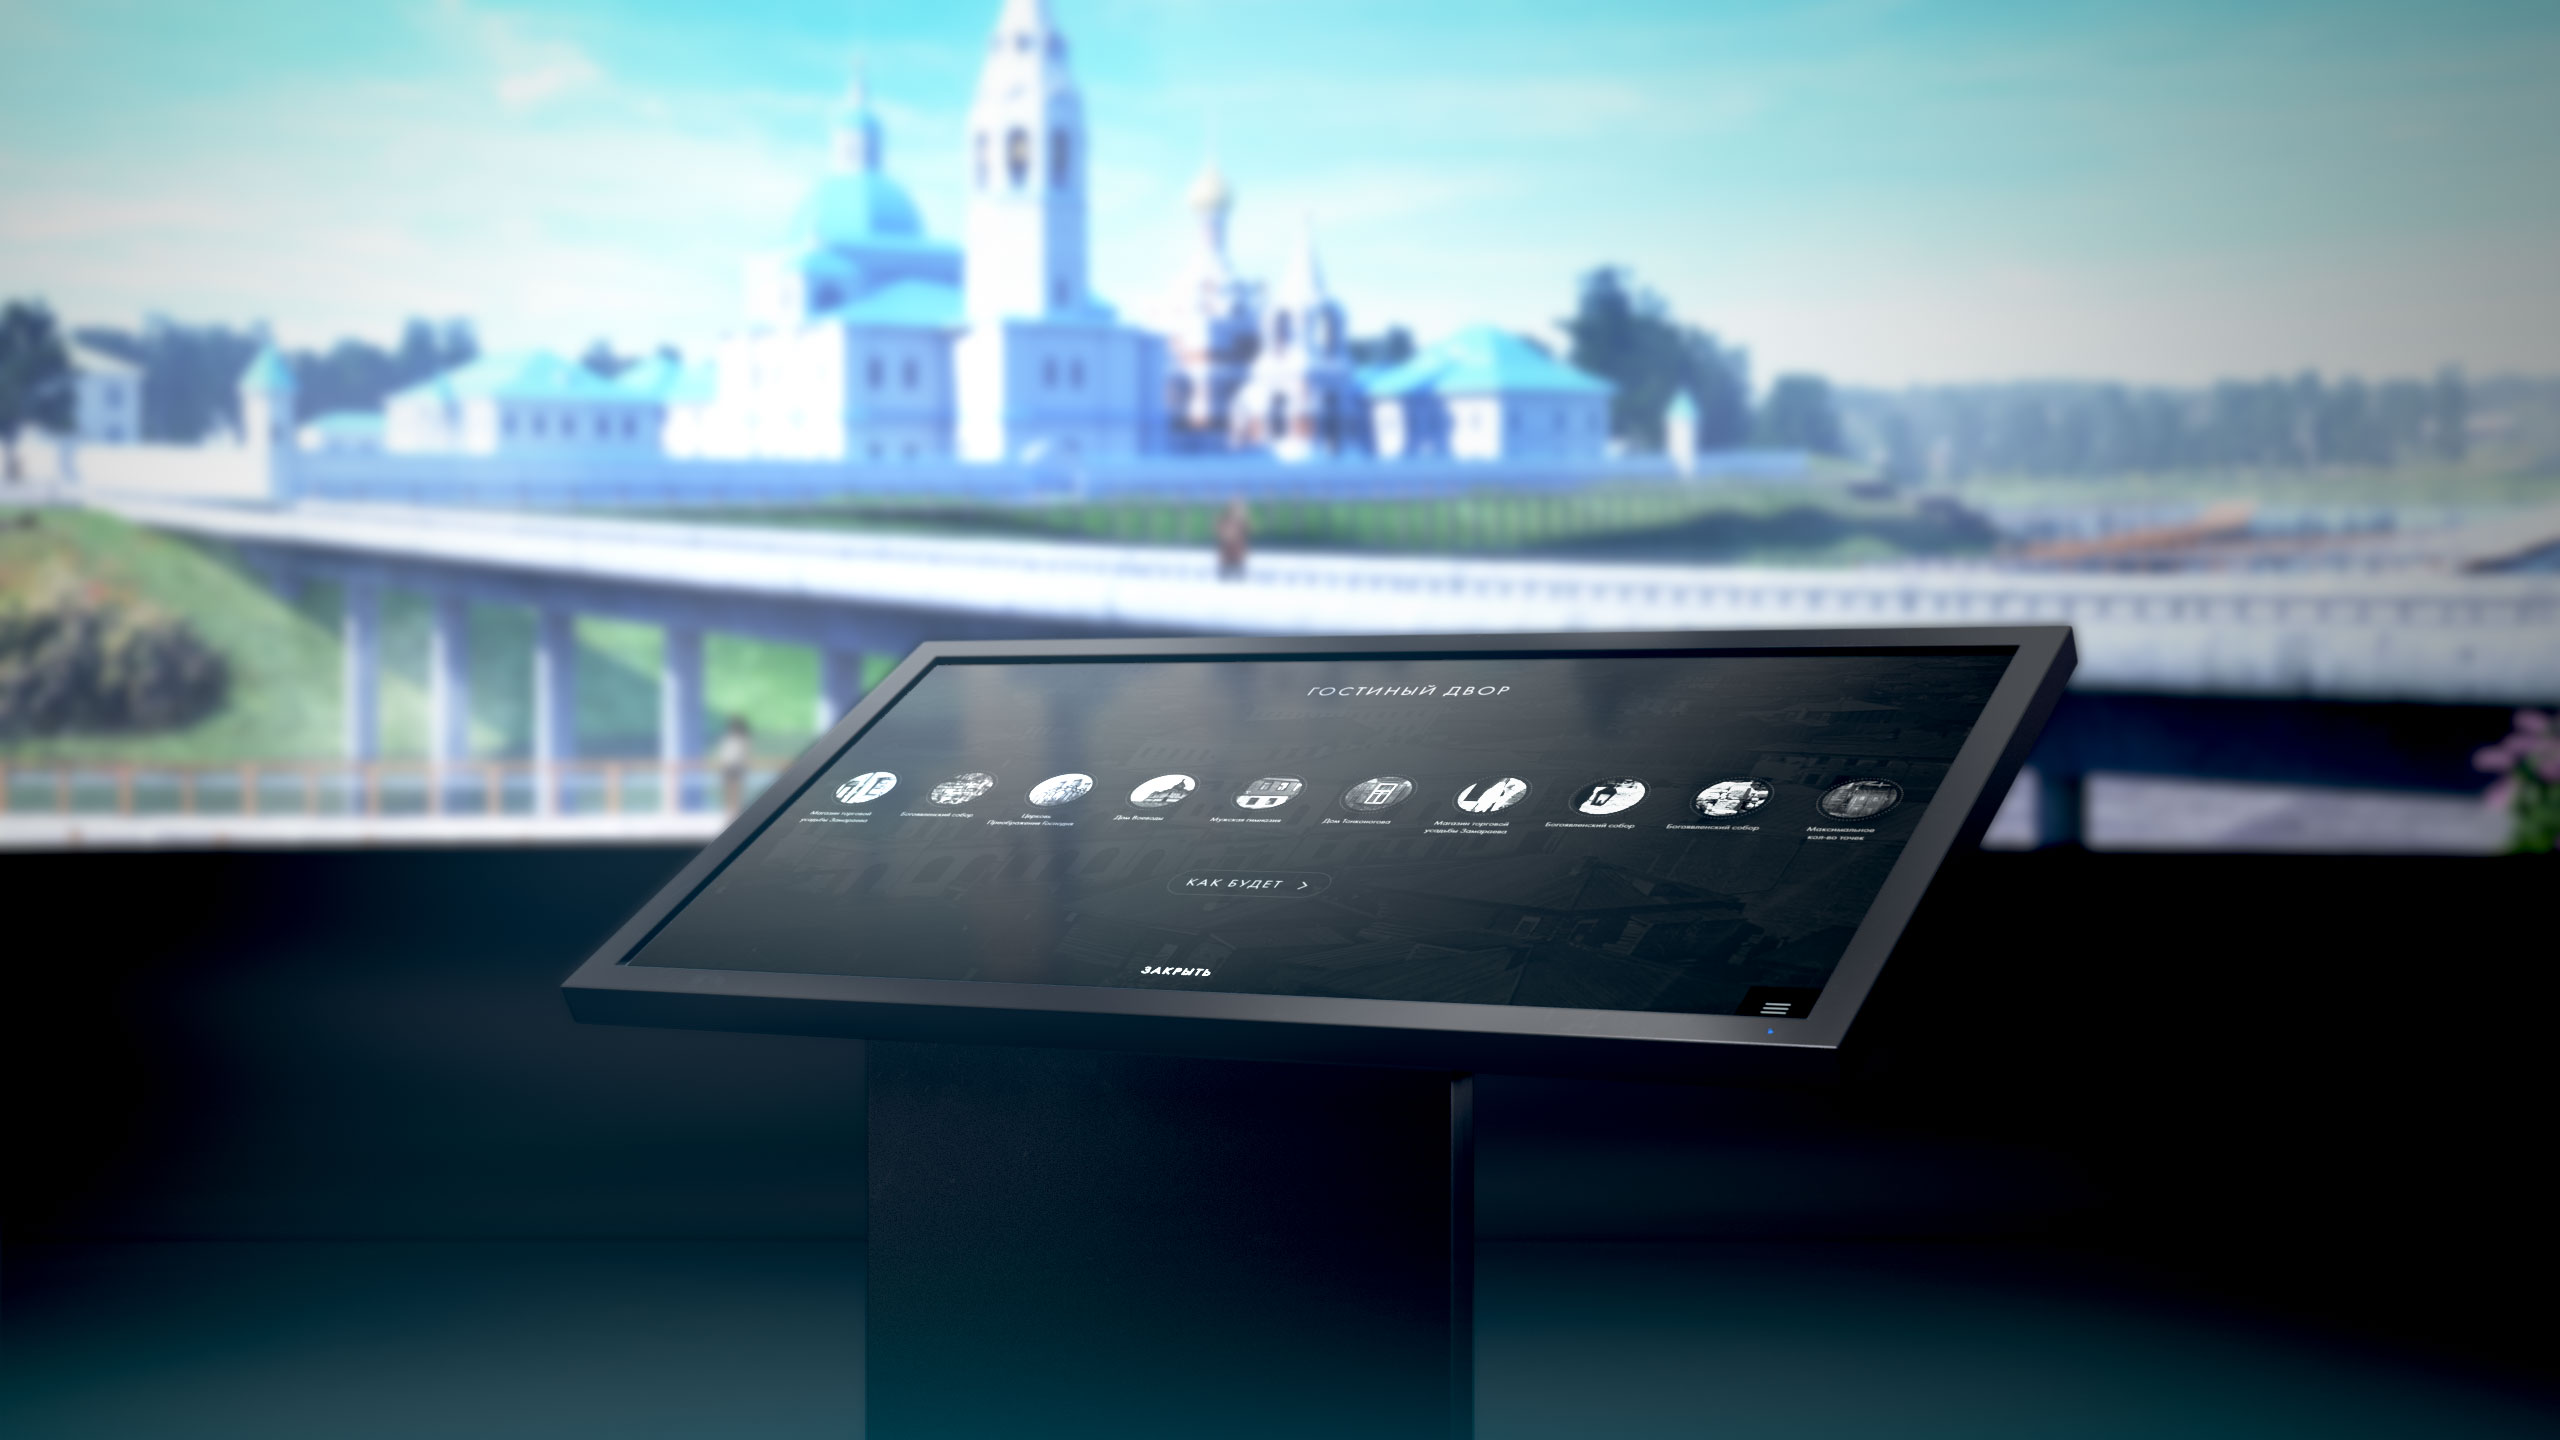 6 touch panel